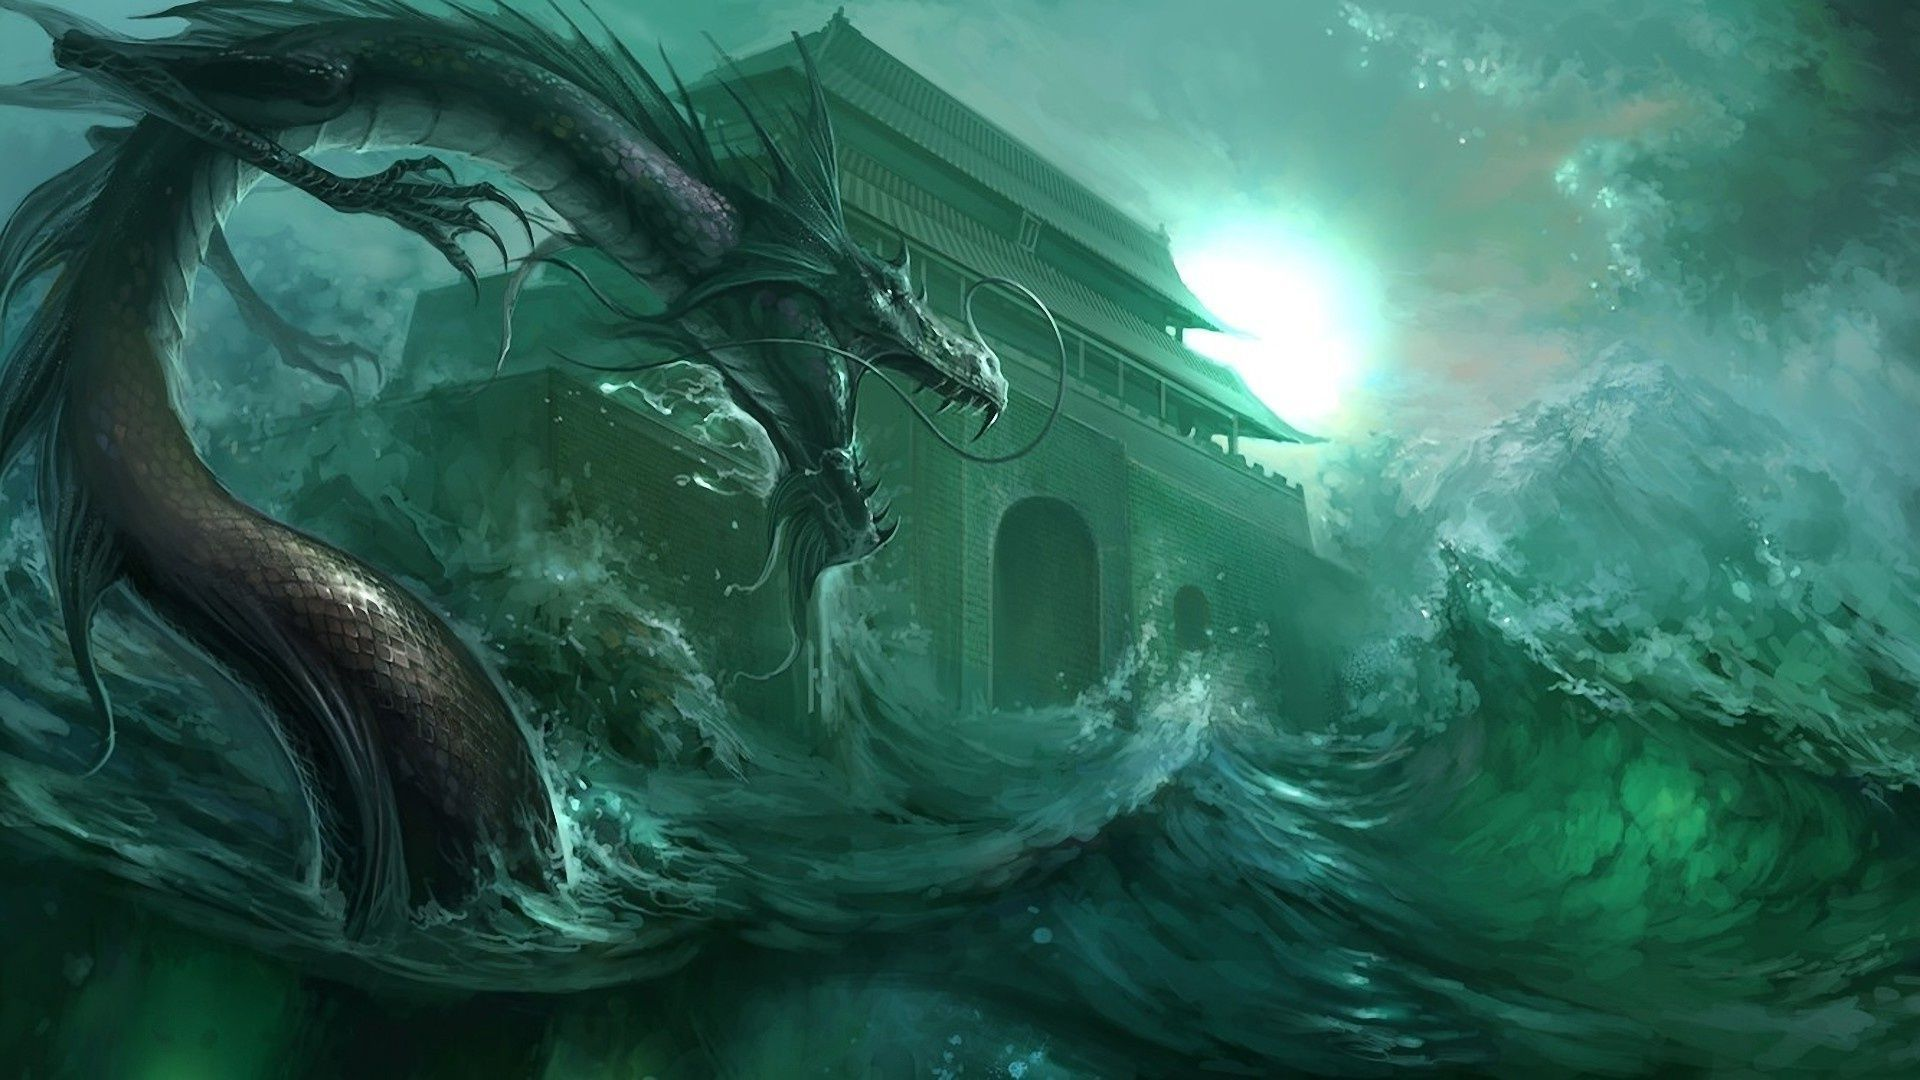 Water Dragon Wallpaper